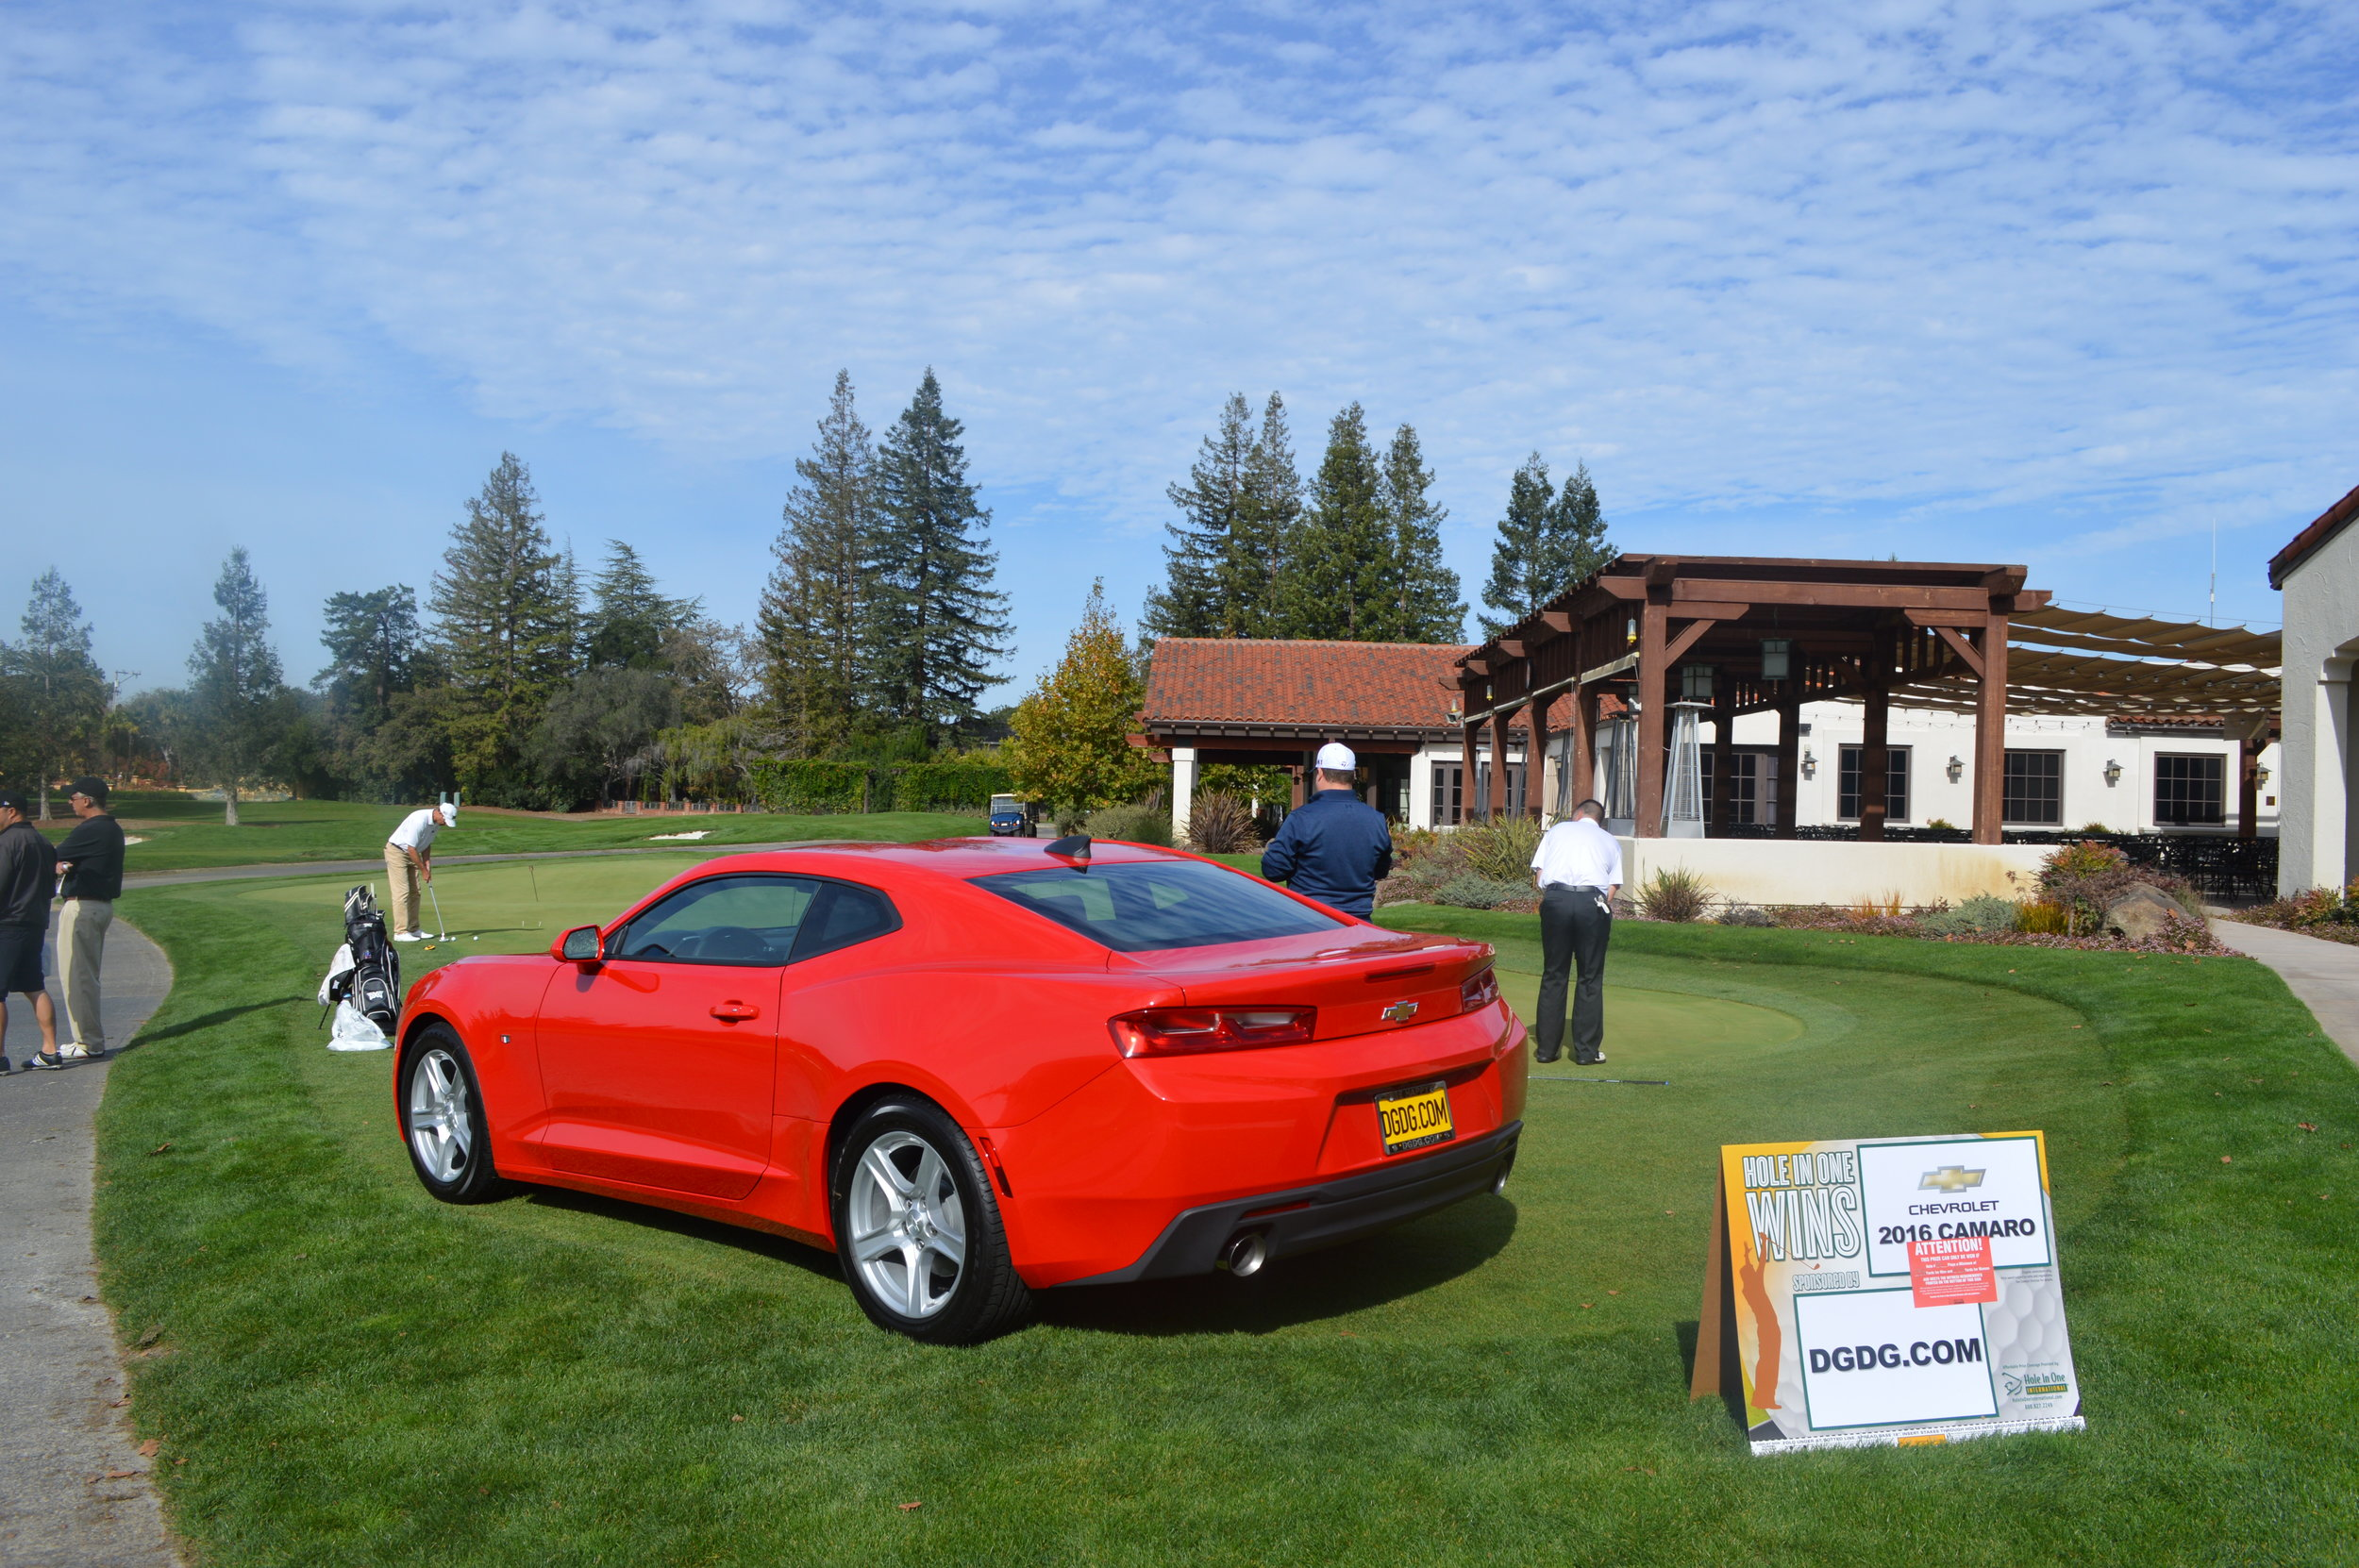 The 2016 Camaro at the Hole in One Challenge